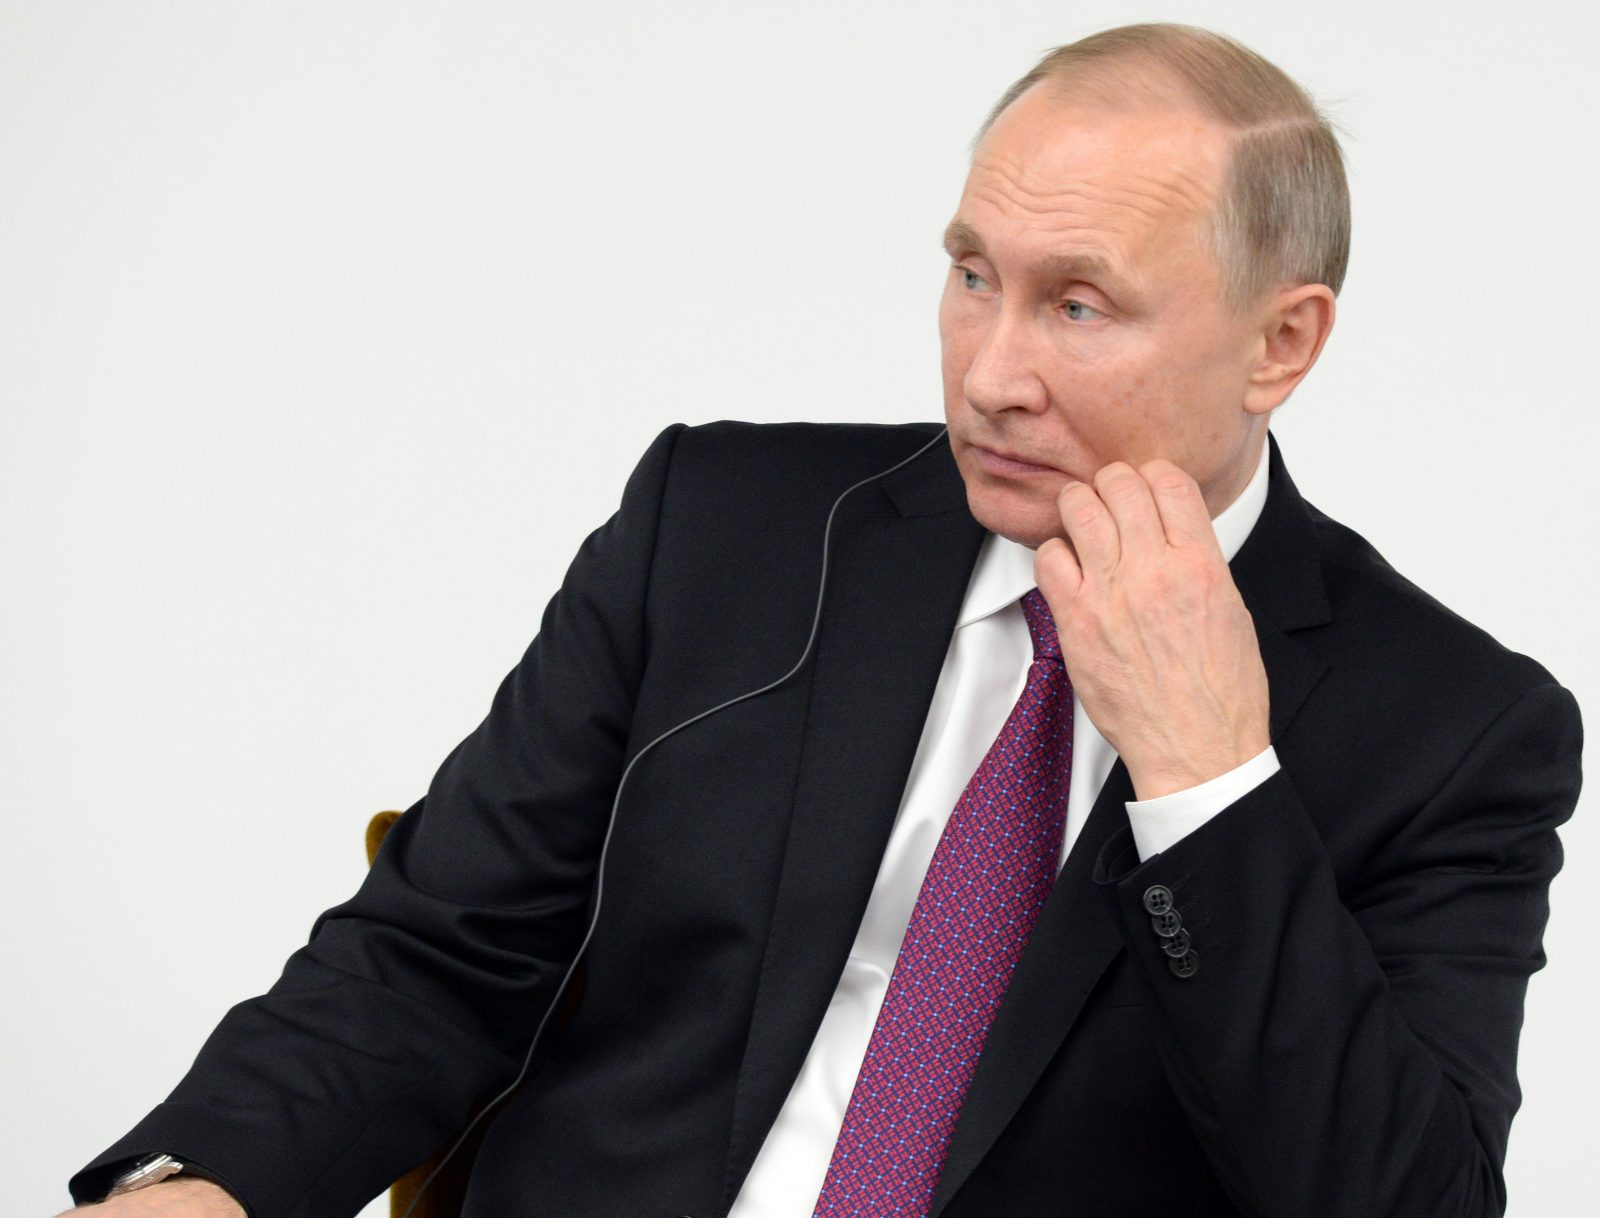 Russian President Vladimir Putin will meet with U.S. President Donald Trump in Helsinki, Finland, on Monday. (Getty Images)